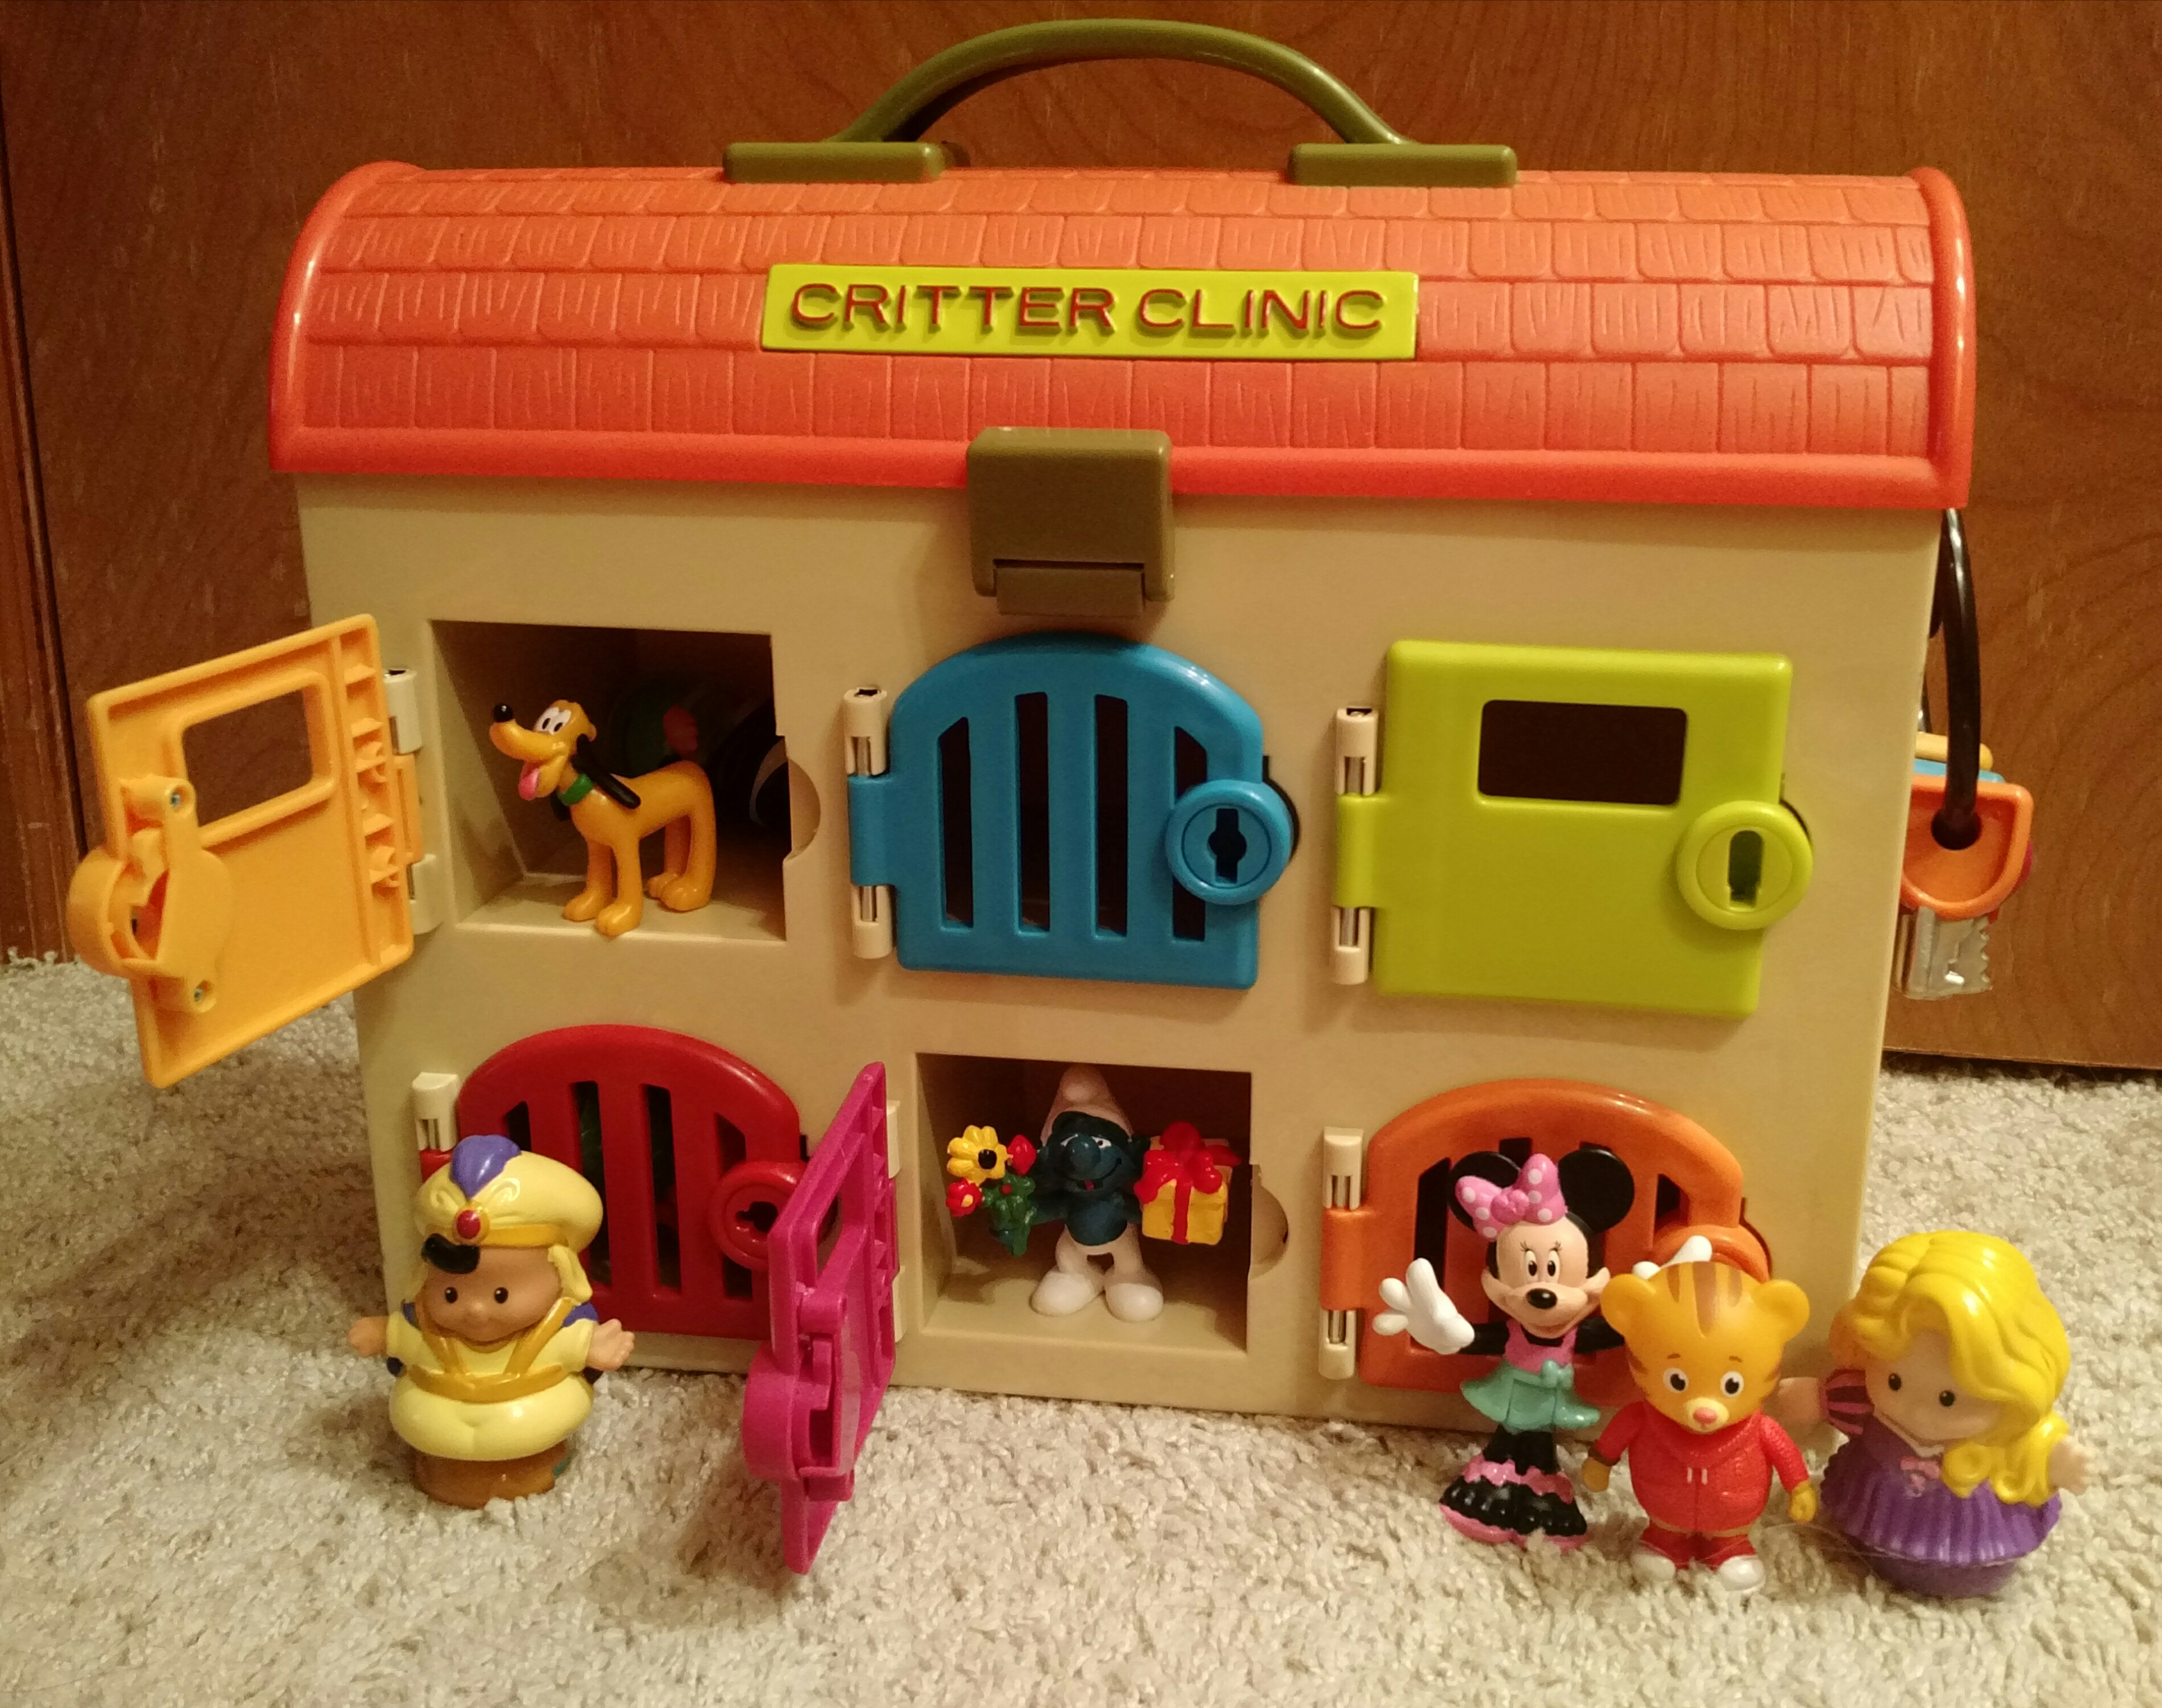 Toys with doors are so magical! The doors OPEN\u2026 and CLOSE! Ha! Seriously the doors can uncover all kinds of wonderful objects inside. & Playing with\u2026 DOORS \u2013 Let\u0027s Play: the speech and language way